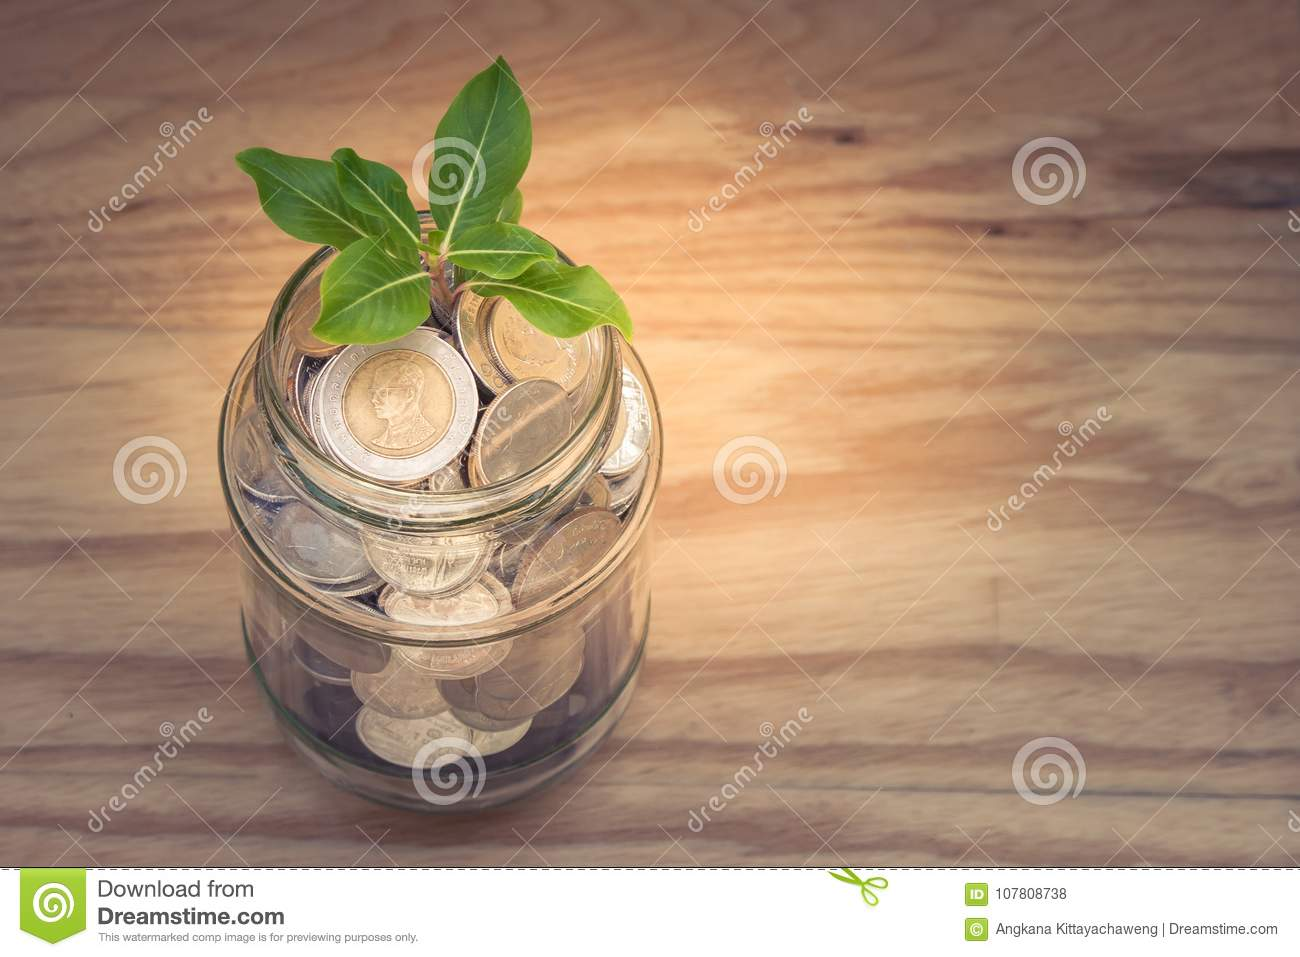 Business and Financial Concept : Green sprount tree growing through money coins in savings money glass jar.